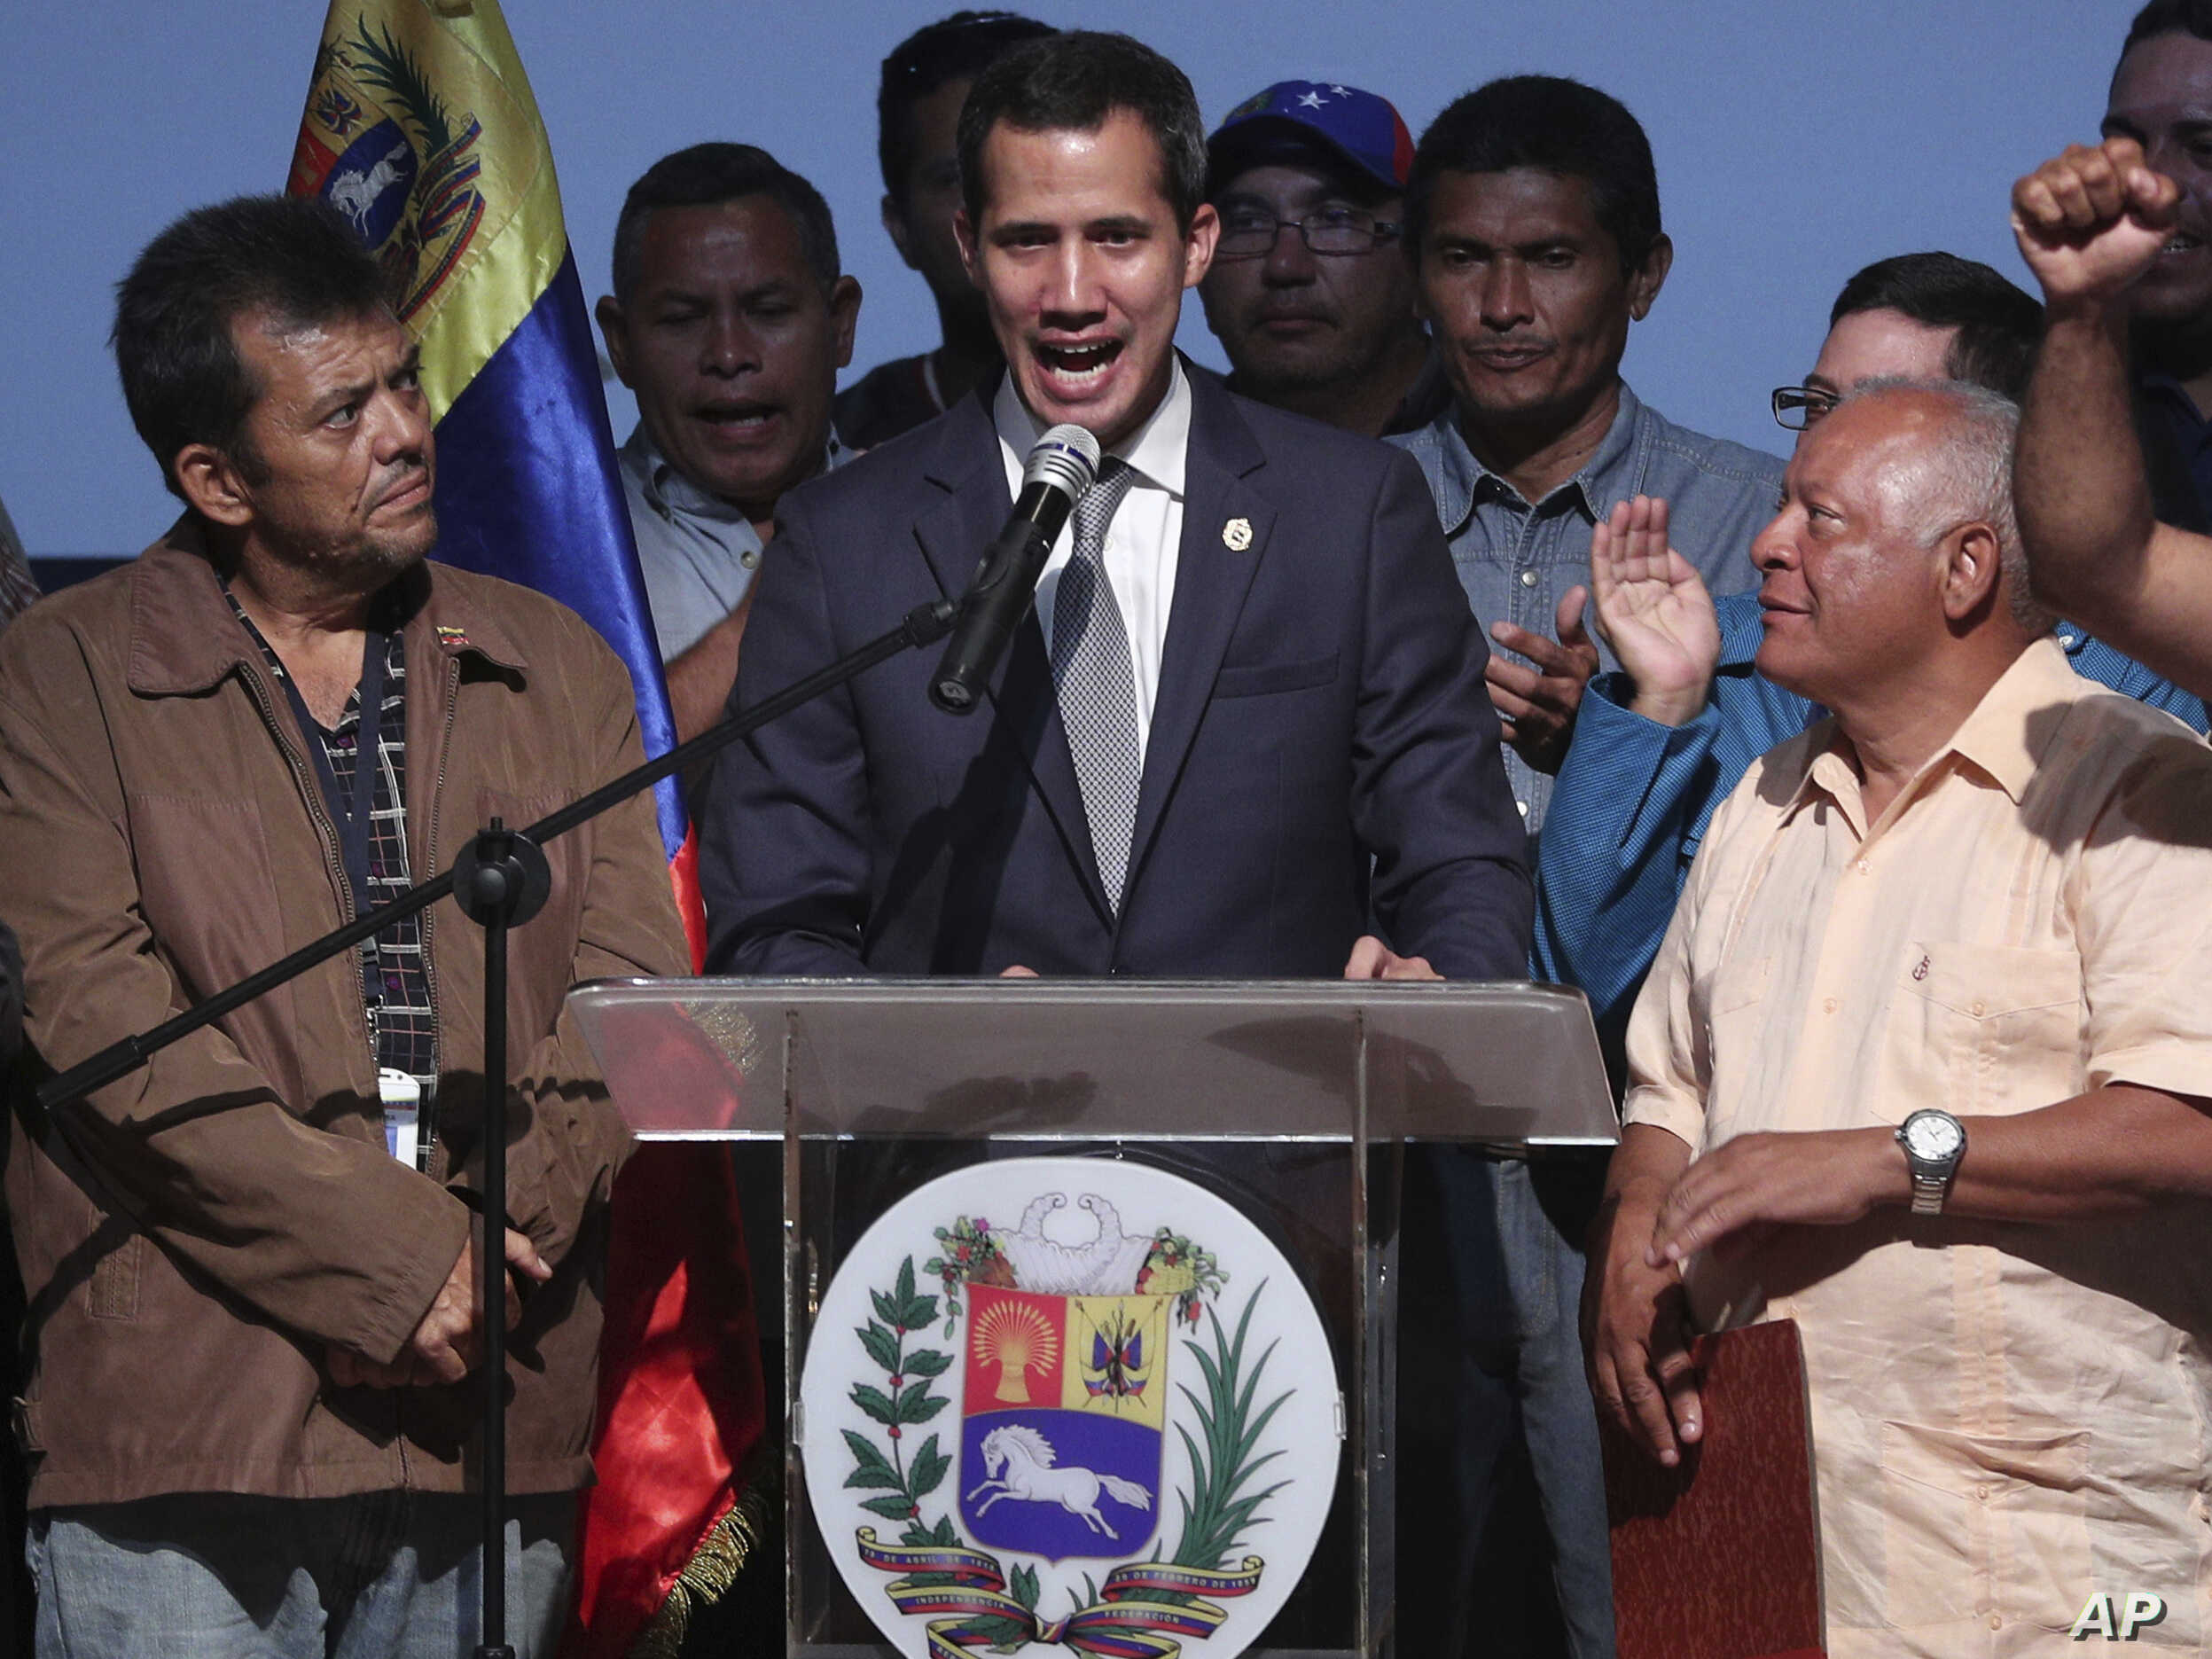 Venezuela's opposition leader and self proclaimed interim President Juan Guaido, center, speaks during a meeting with oil workers at the Metropolitan University of Caracas, Venezuela, May 3, 2019.